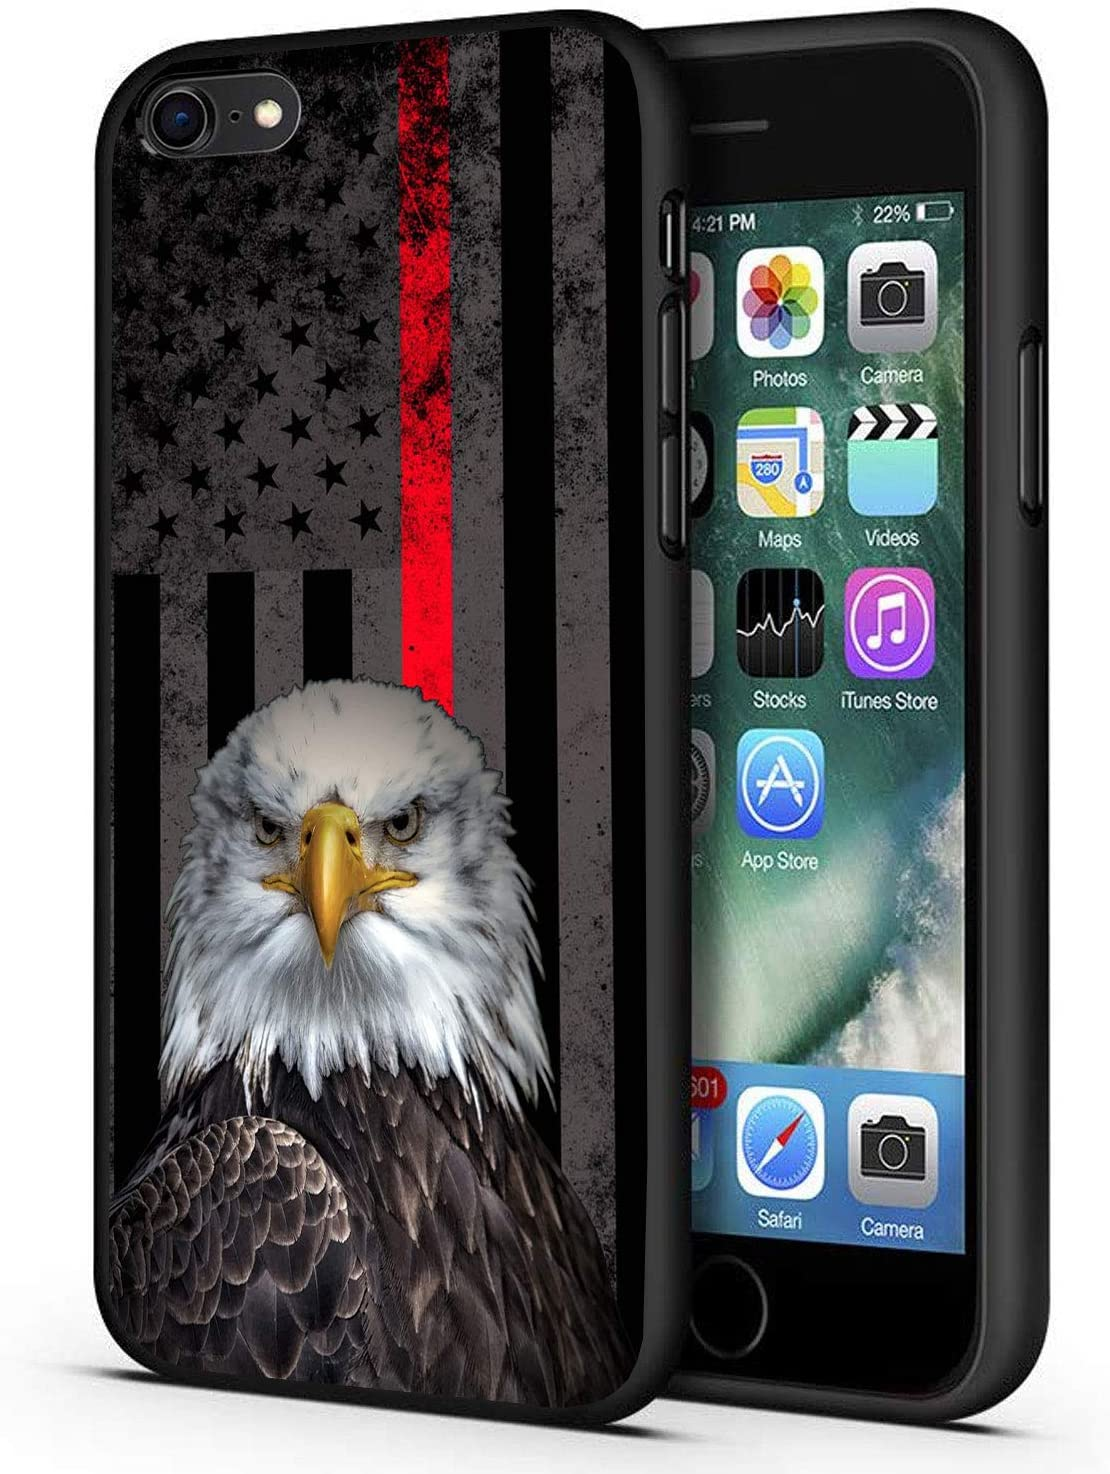 Good-Luck iPhone SE Case,iPhone 5S/5 Case,Bald Eagle Thine Red Line American Flag Slim Anti-Scratch Shockproof Leather Grain Soft TPU Back Protective Cover Case for iPhone SE/5S/5